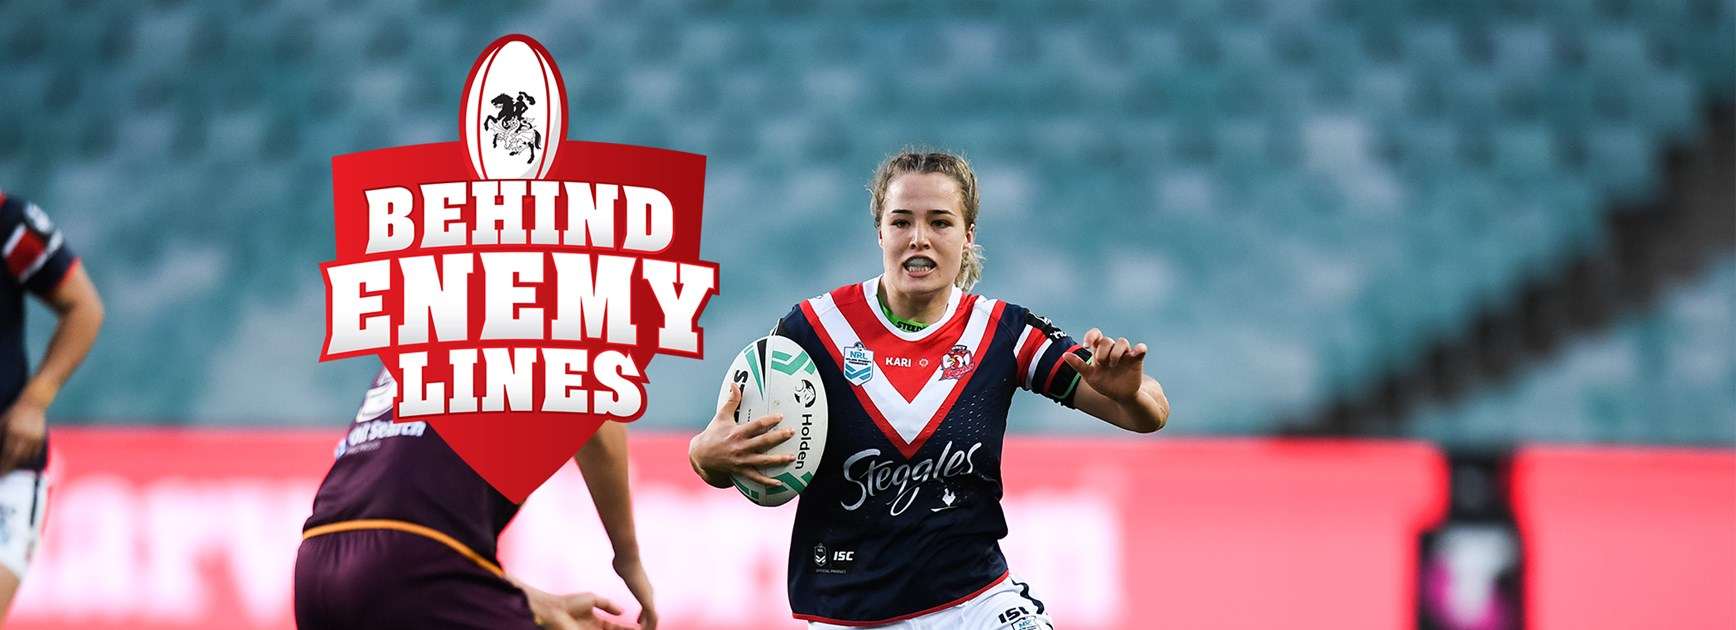 Behind enemy lines: NRLW Round 3